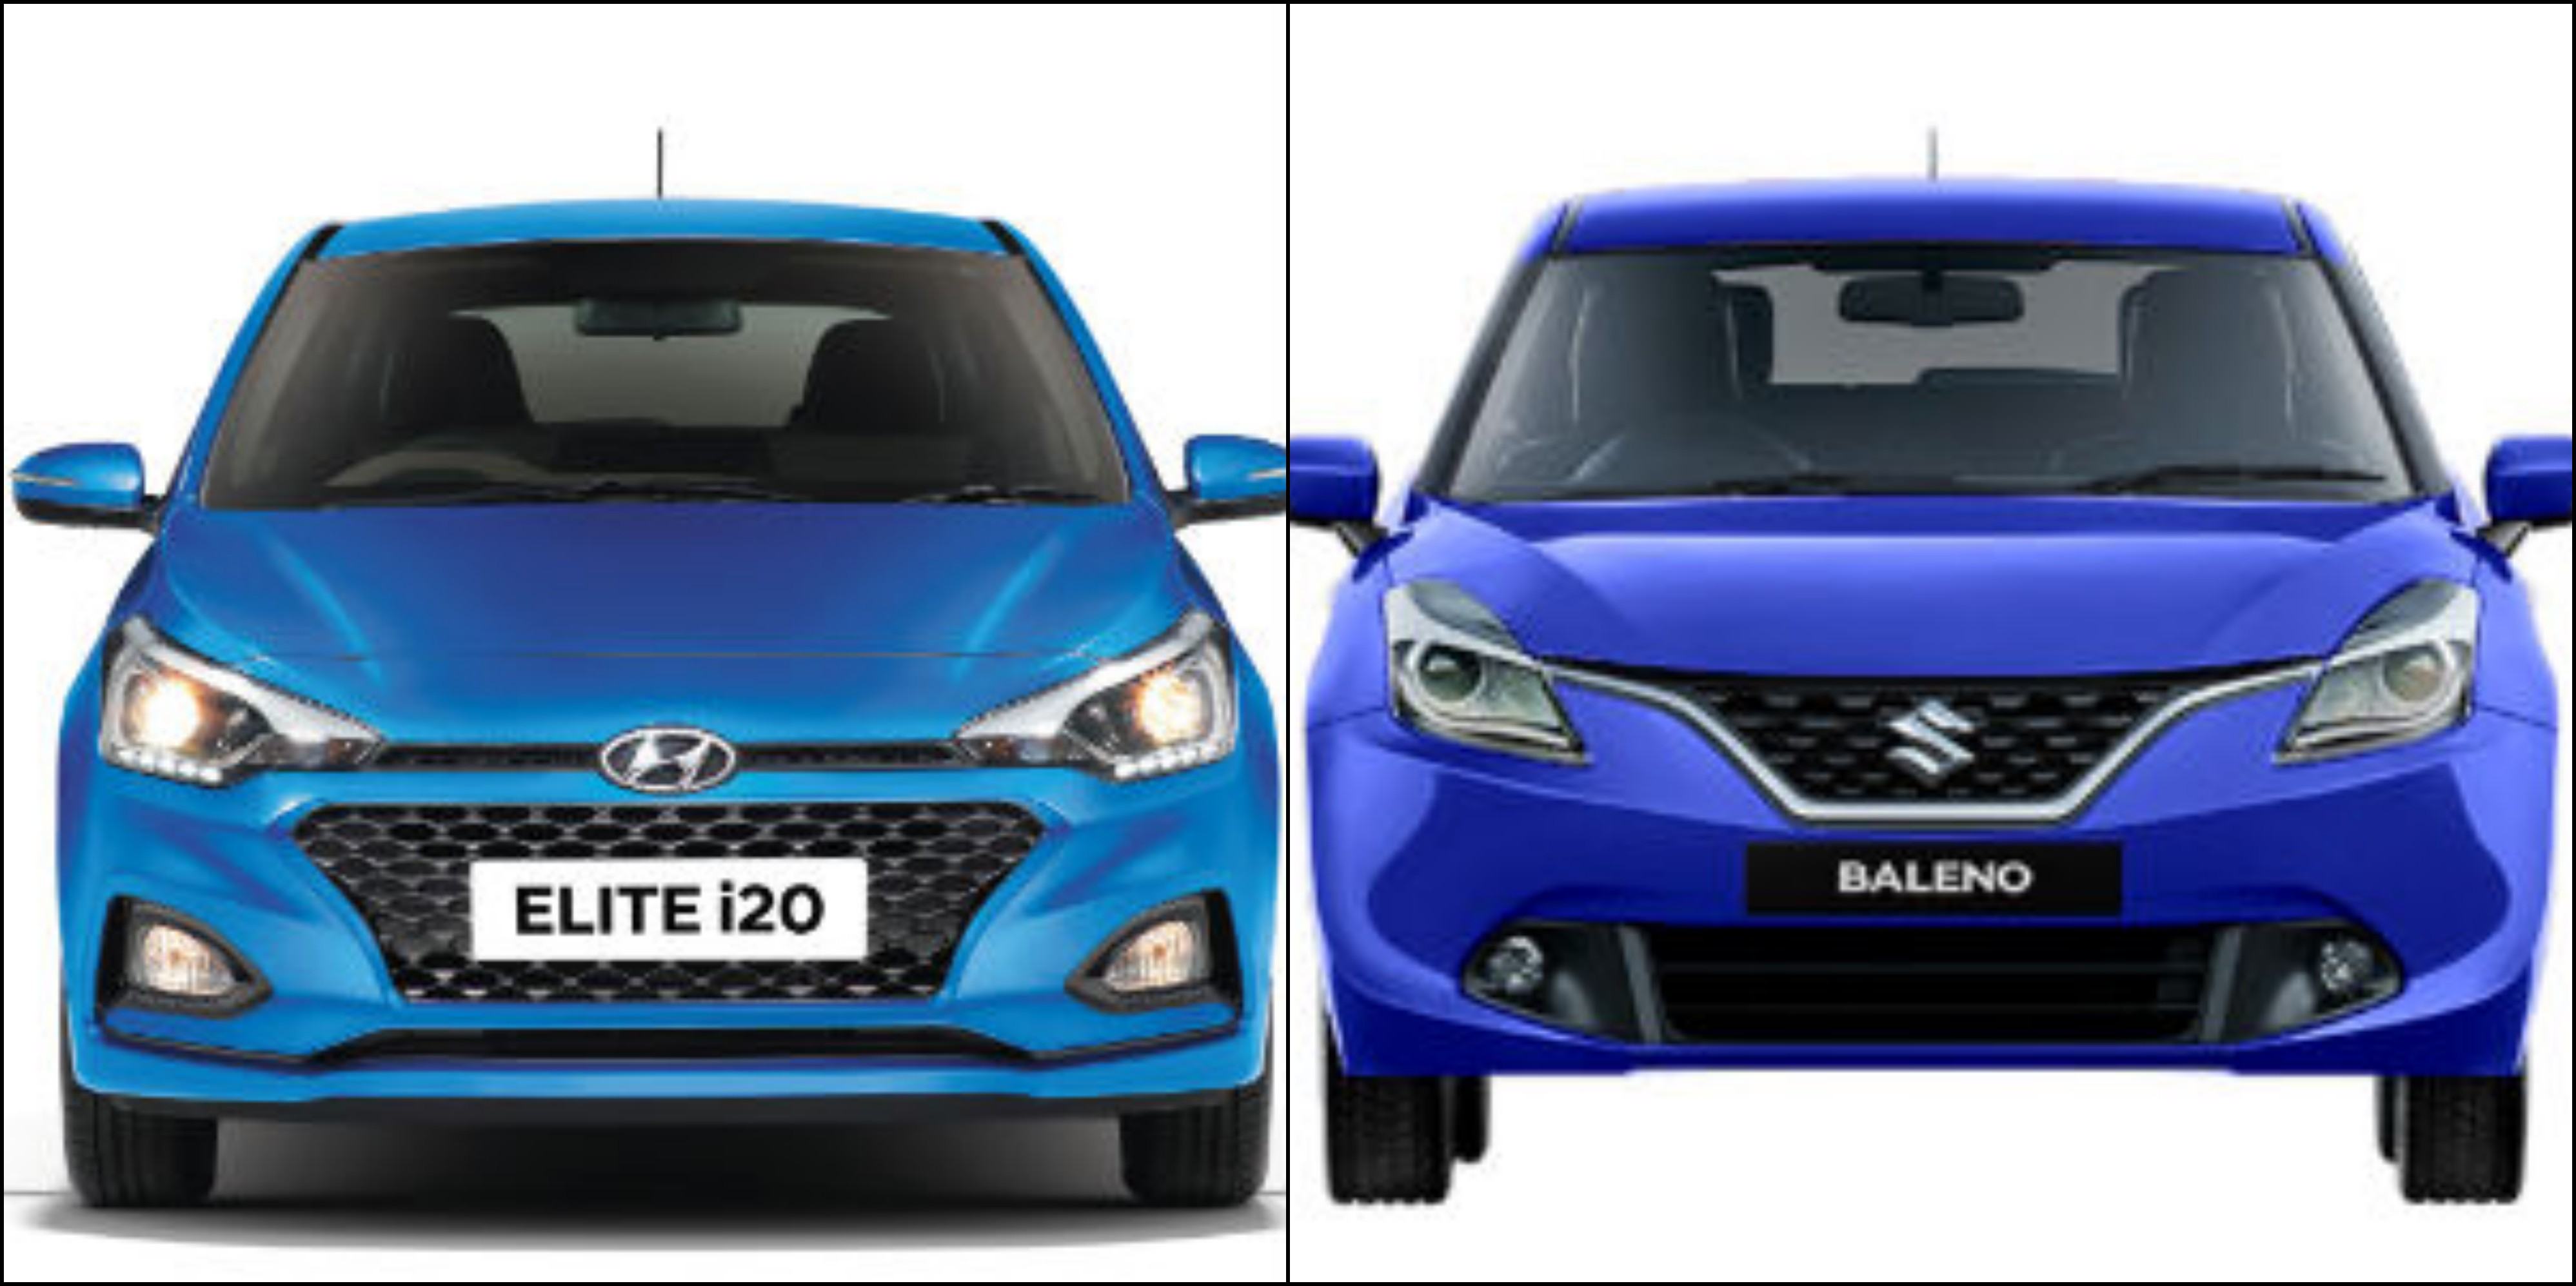 New Hyundai i20 Facelift Vs. Maruti Baleno Comparison: Design, Specs, Features, Price & Mileage